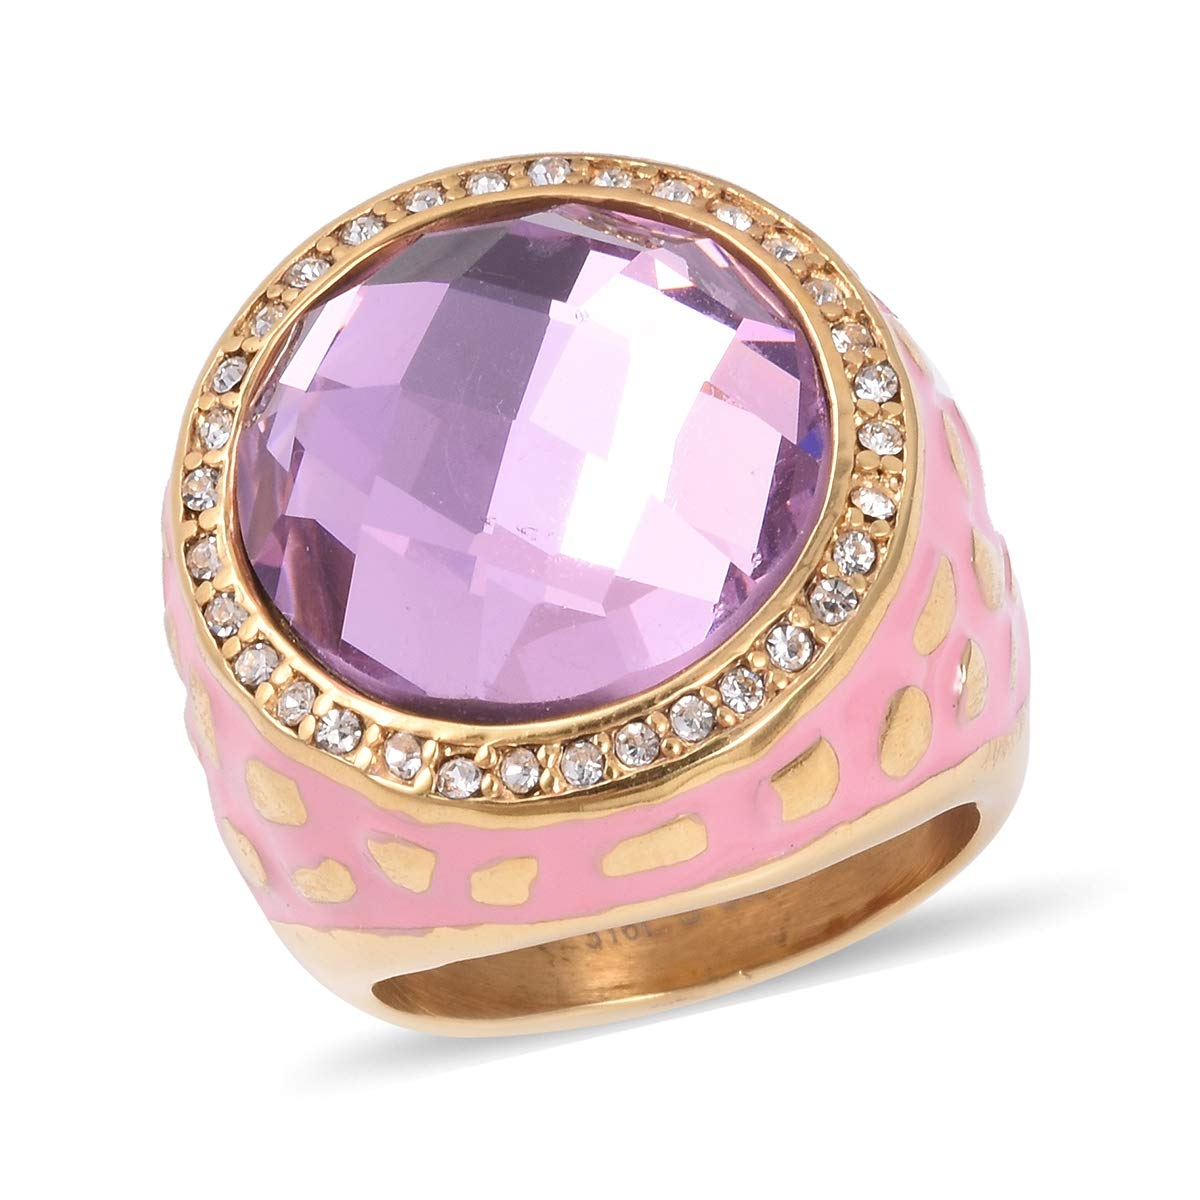 Shop LC Delivering Joy Stainless Steel Enameled Round Pink Glass Cocktail Ring Jewelry for Women Size 8